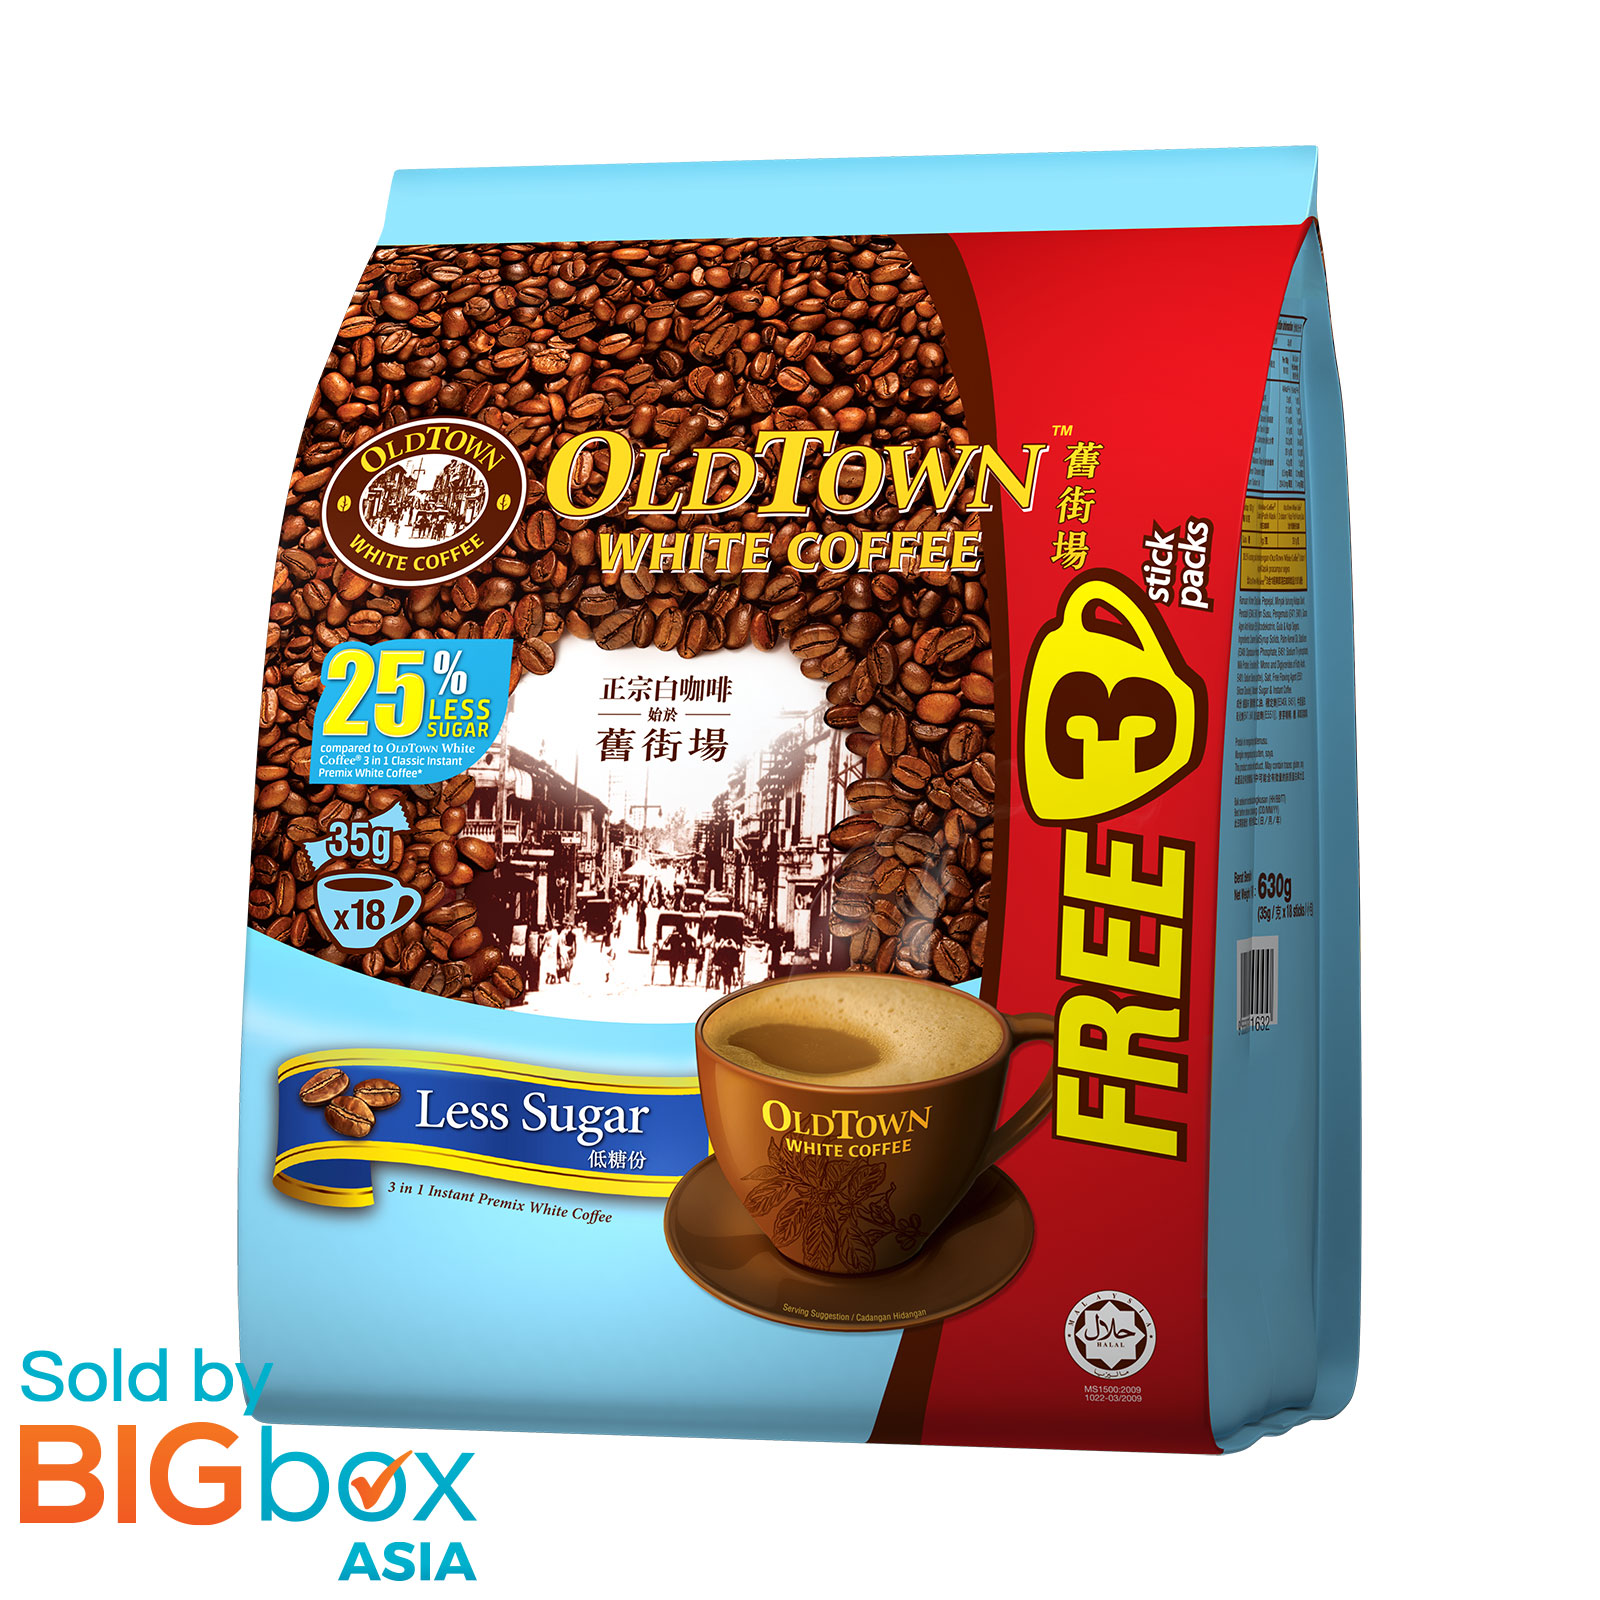 OLDTOWN White Coffee 3in1 630g (15 + 3 sachets FOC) - Less ...